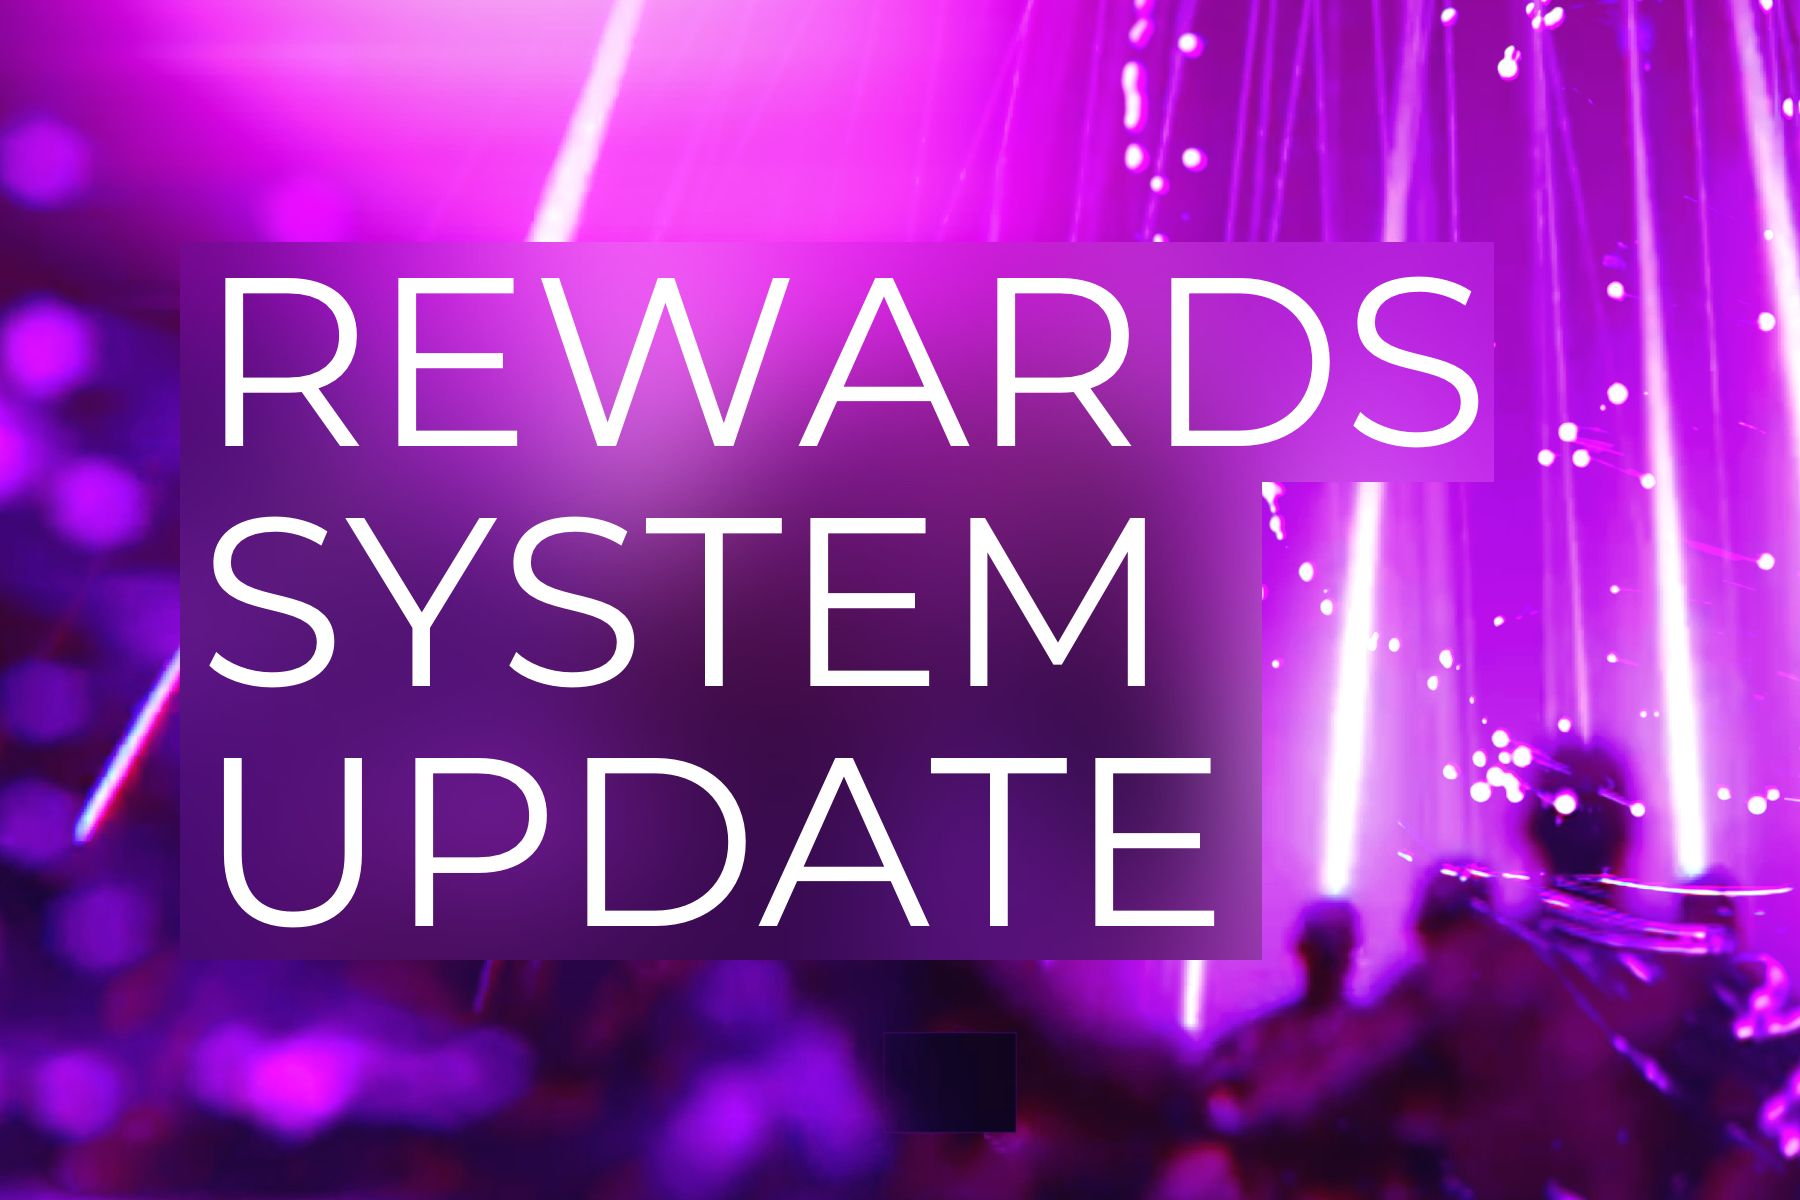 Rewards system update: linking accuracy and CND